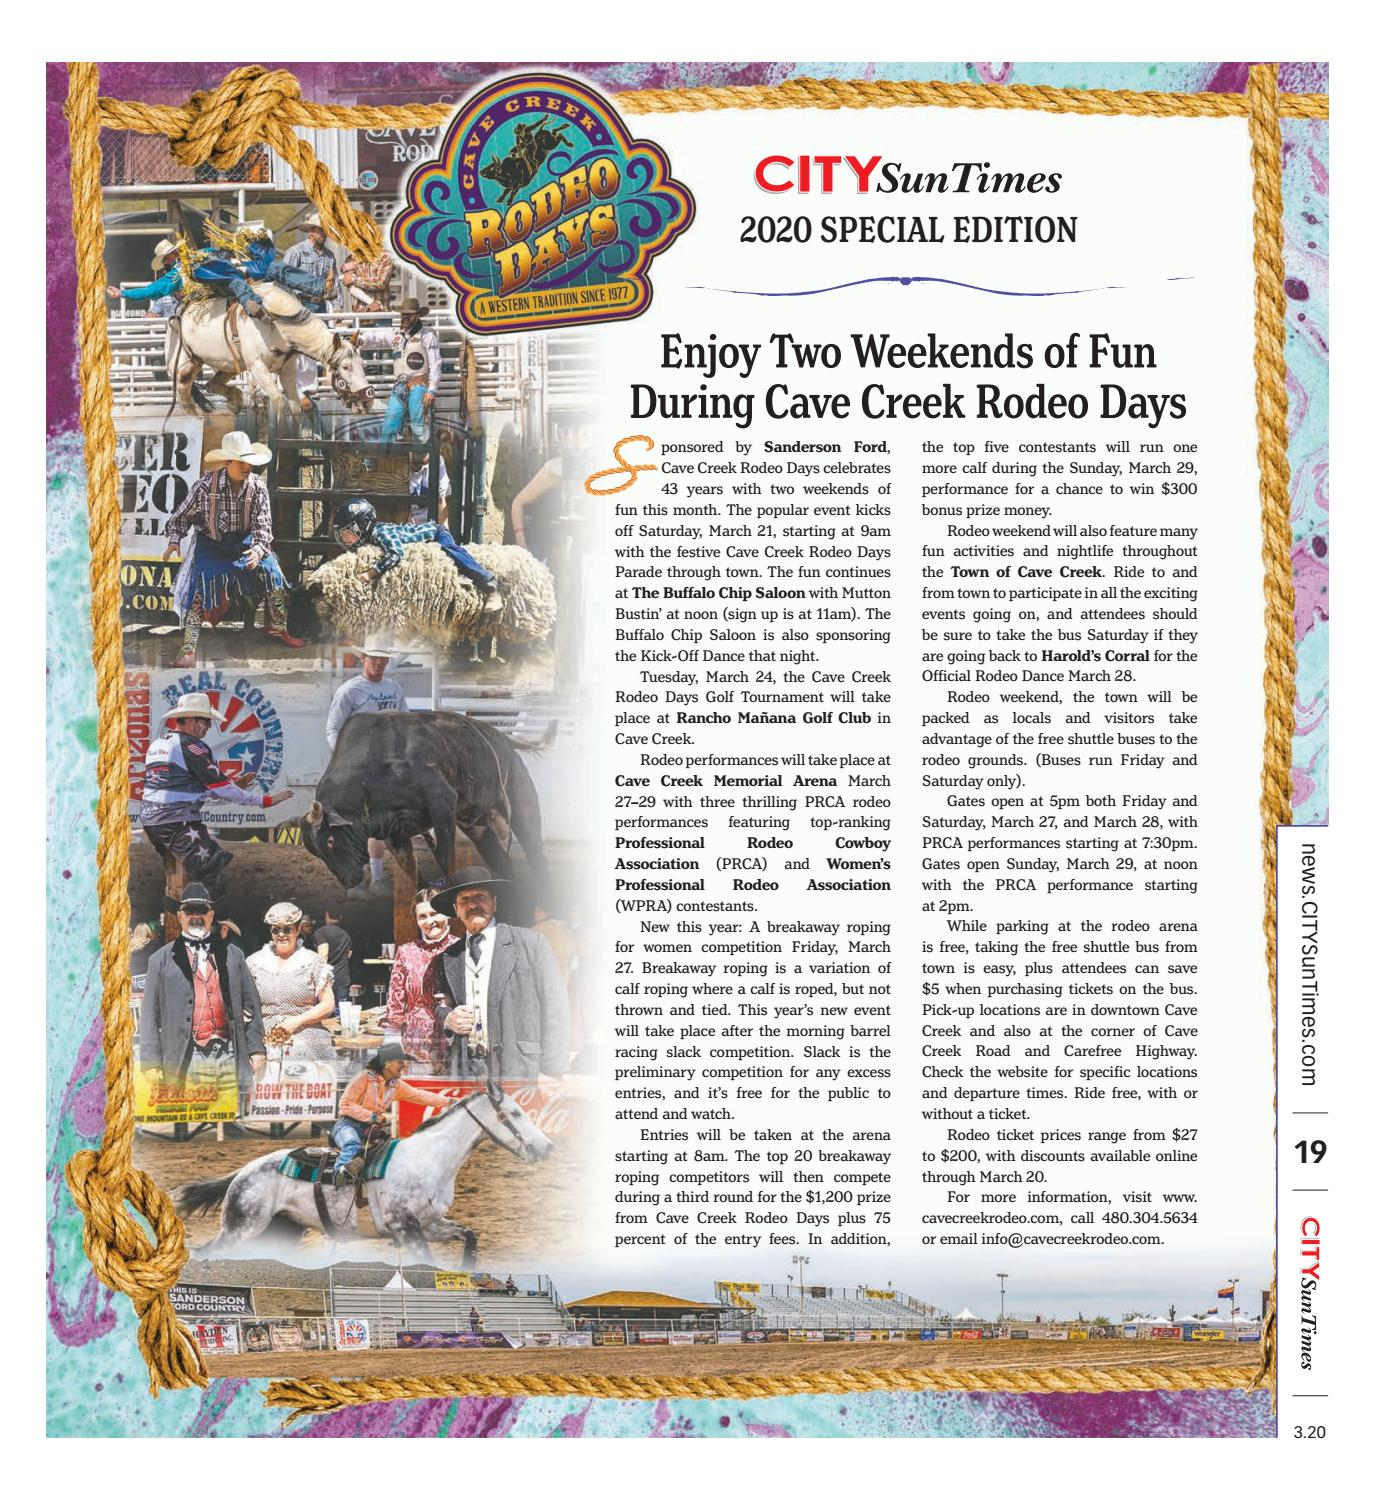 Cave Creek Rodeo Days CITYSunTimes March 2020 Special Edition by